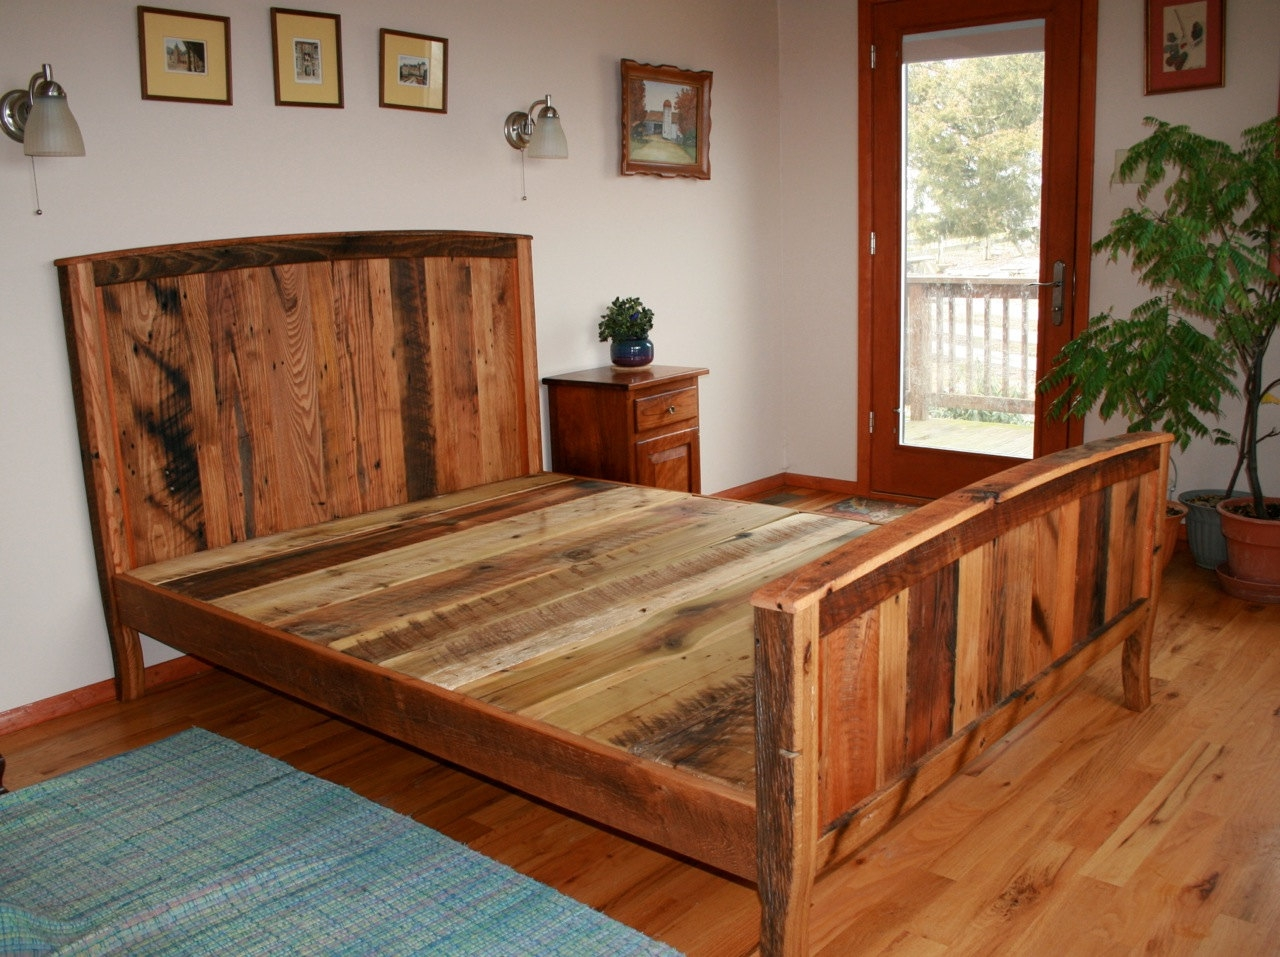 Country Bed Frame Plans1280 X 957